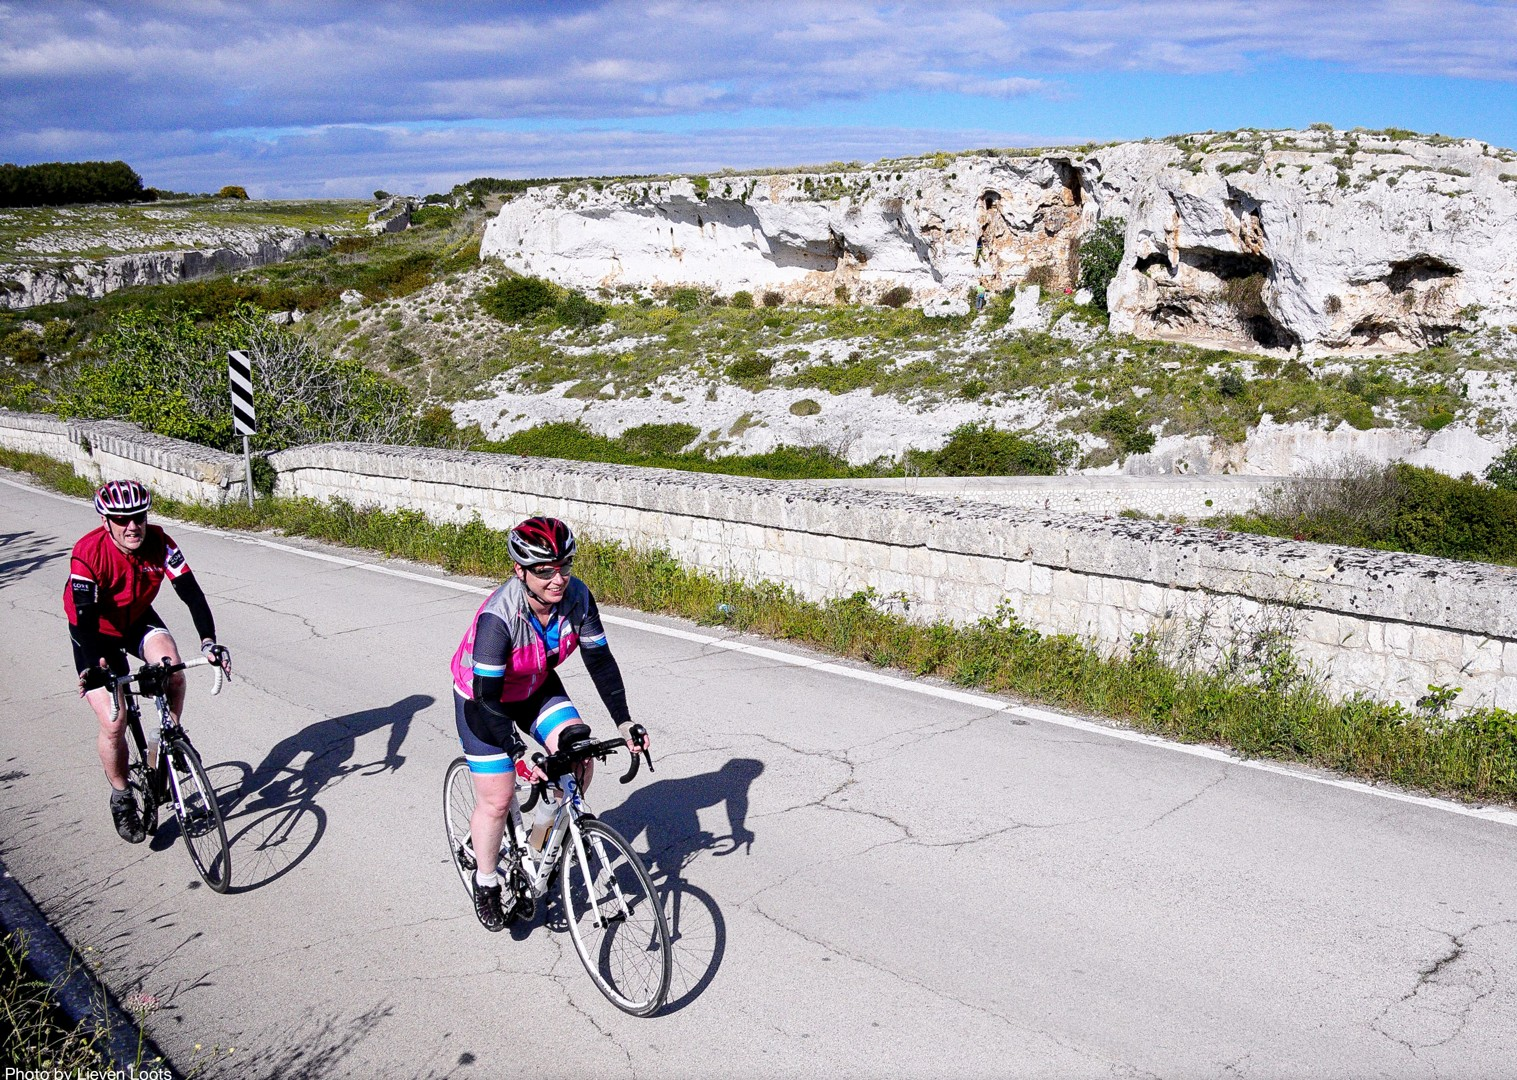 italy-road-cycling-holiday.jpg - Italy - Puglia - The Heel of Italy - Self-Guided Road Cycling Holiday - Italia Road Cycling